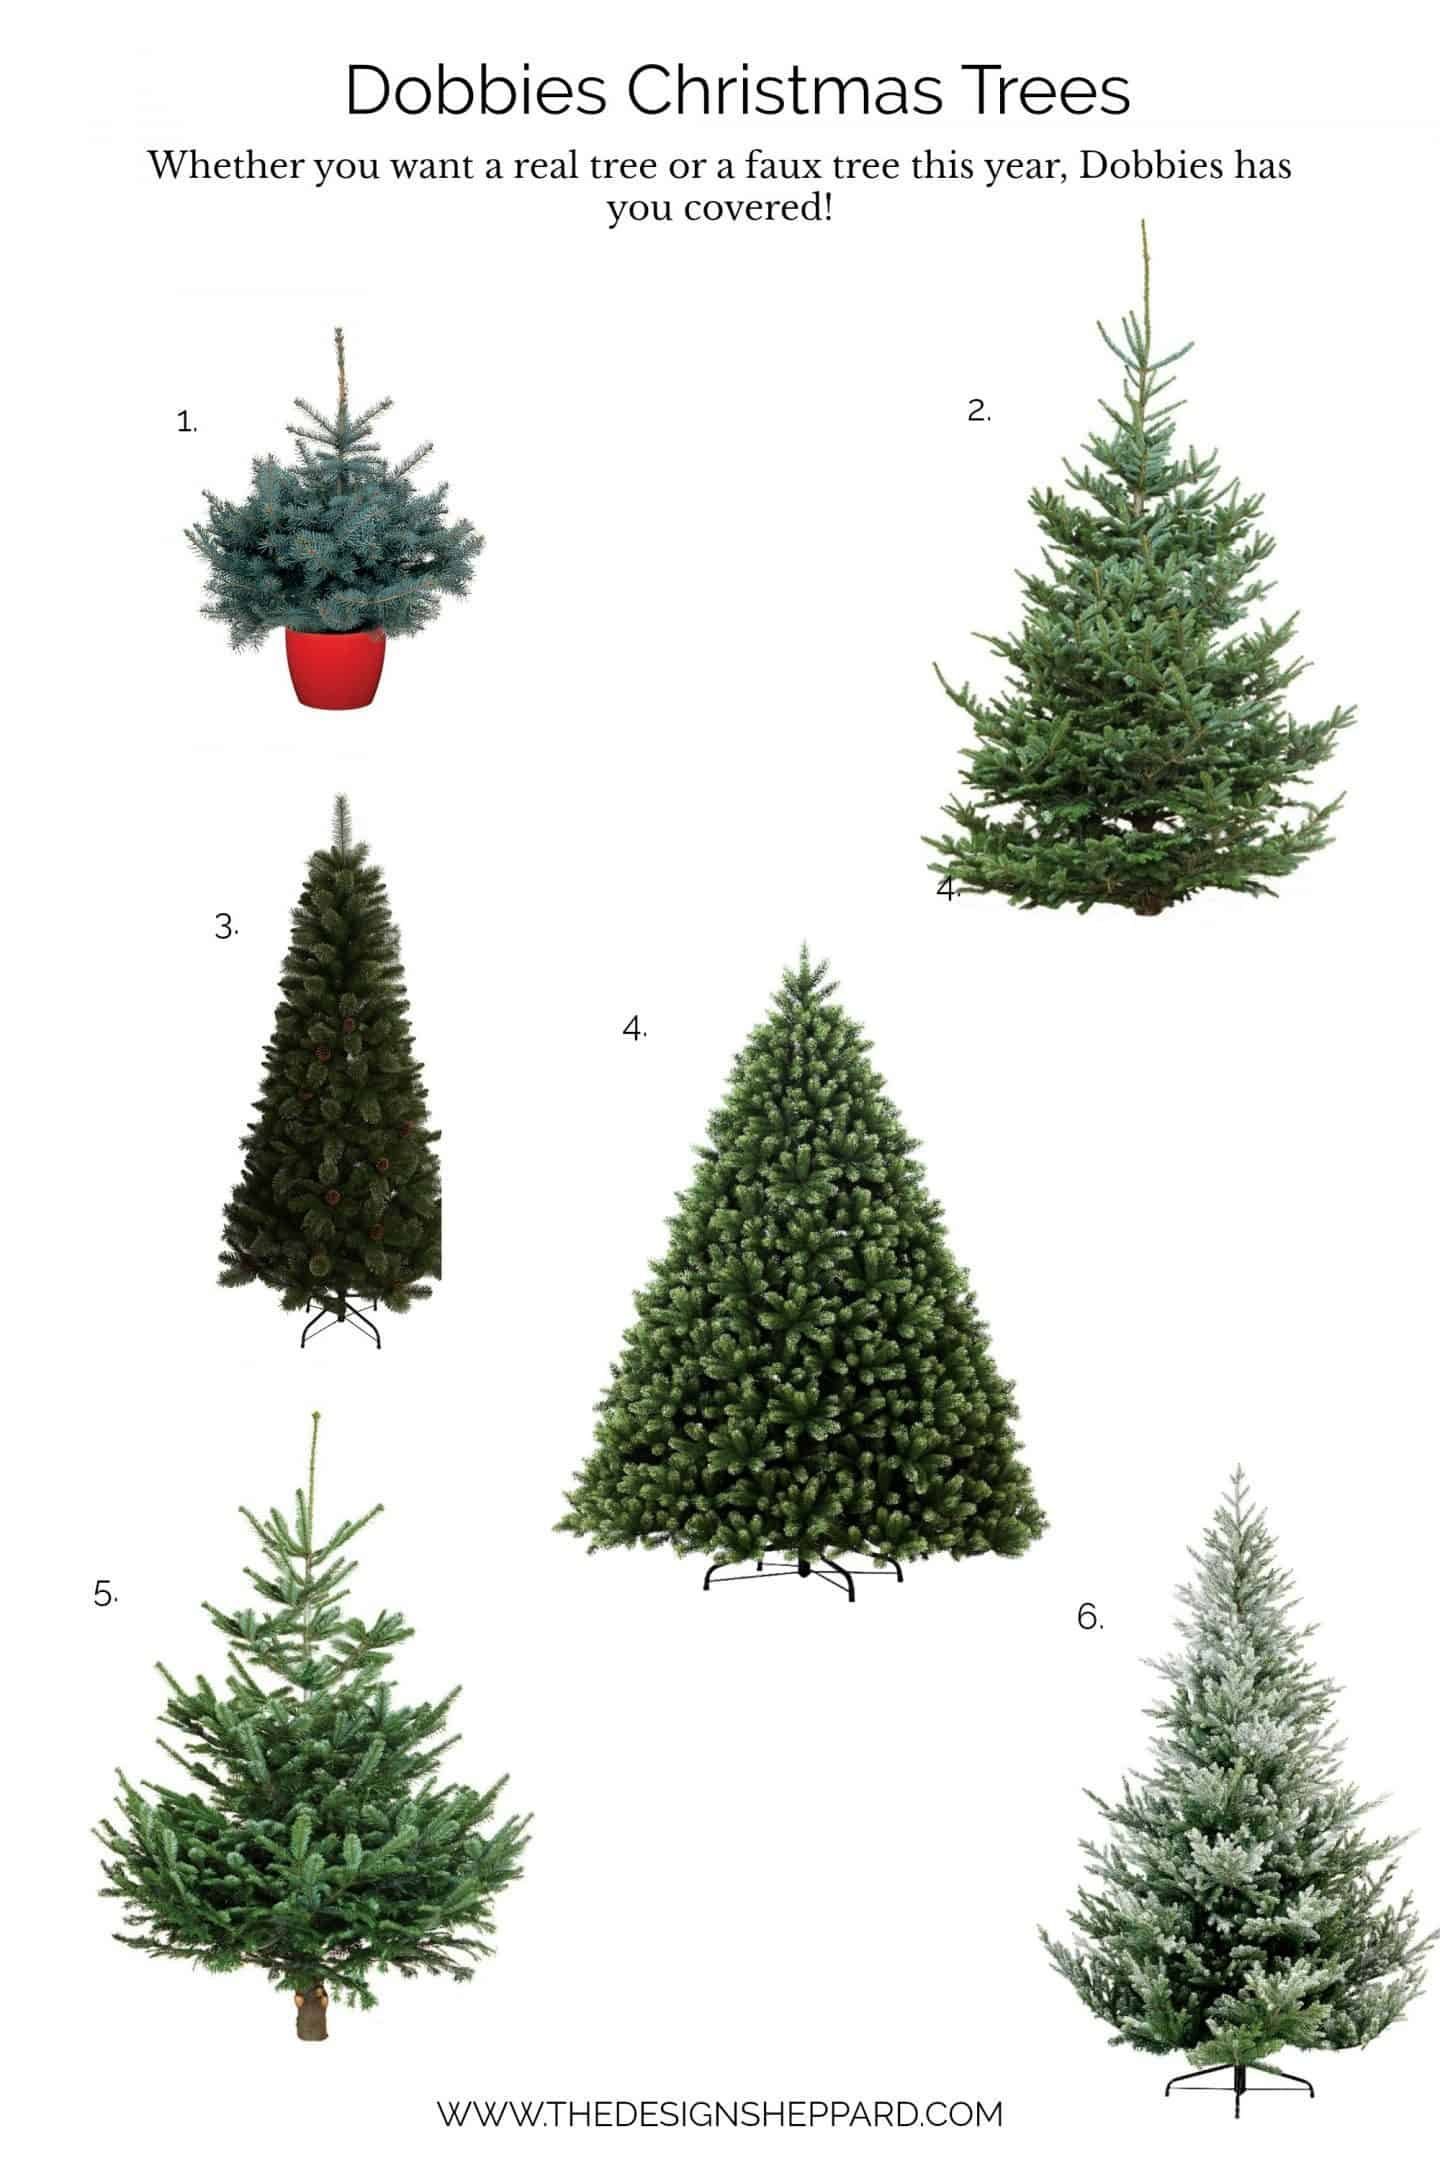 Dobbies Christmas Trees - a selection of real trees or realistic faux trees